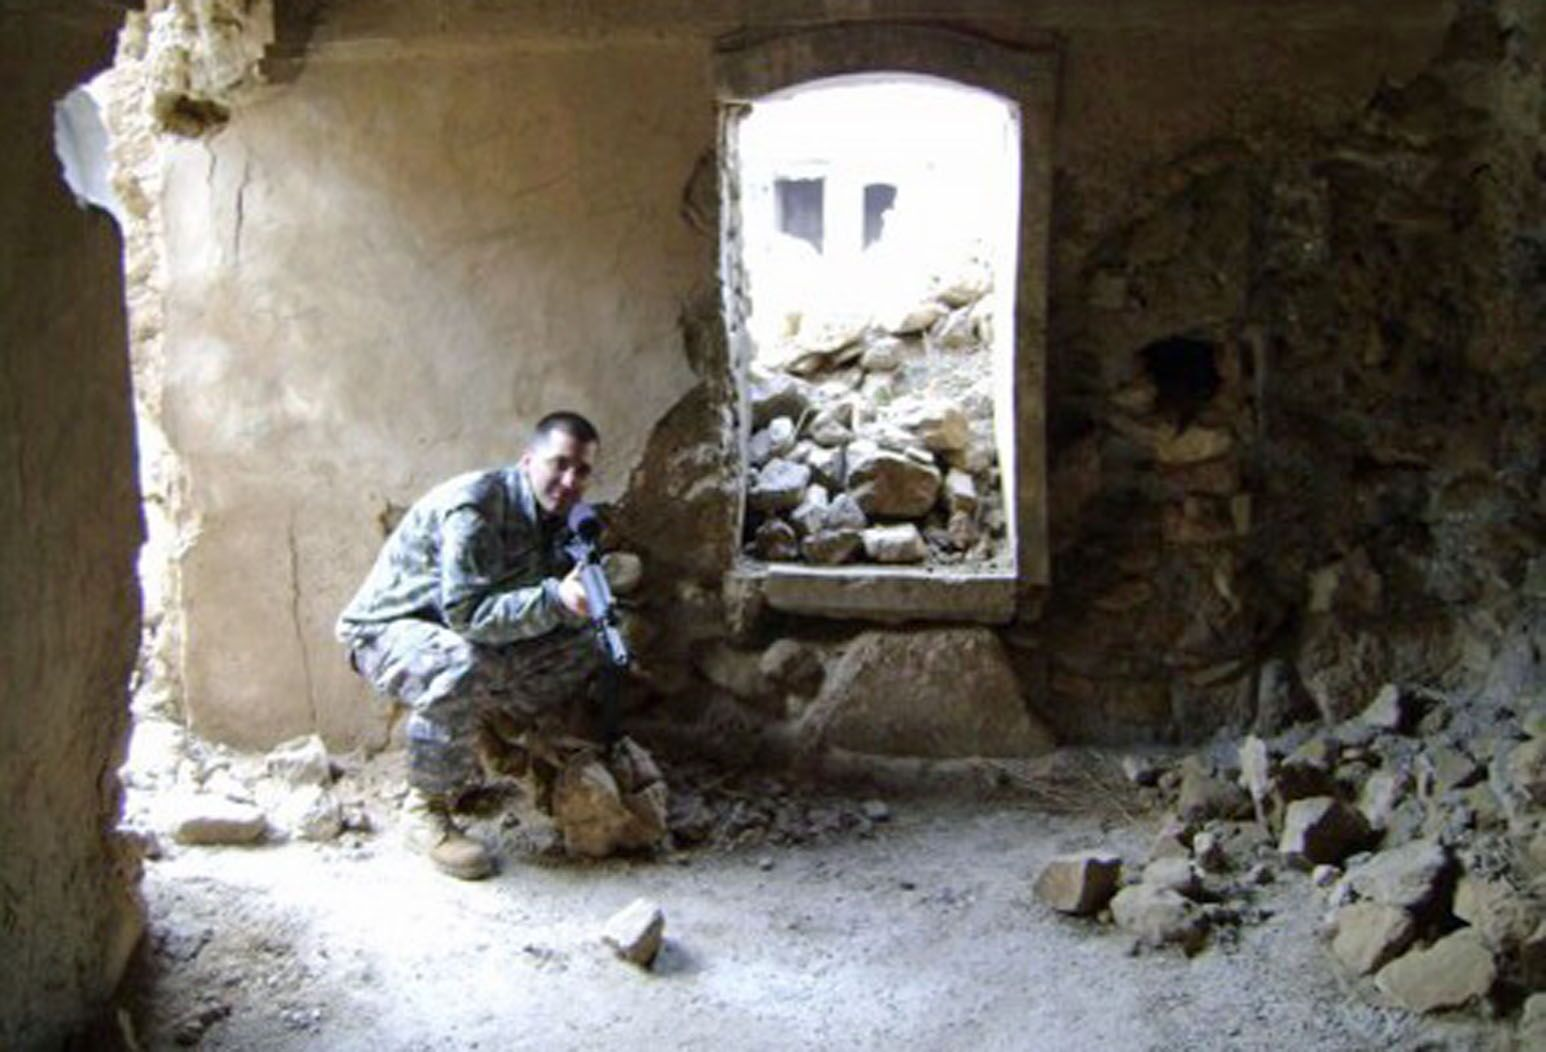 Omar Bholat, MD, holds a machine gun while crouching in a crumbled building in Iraq